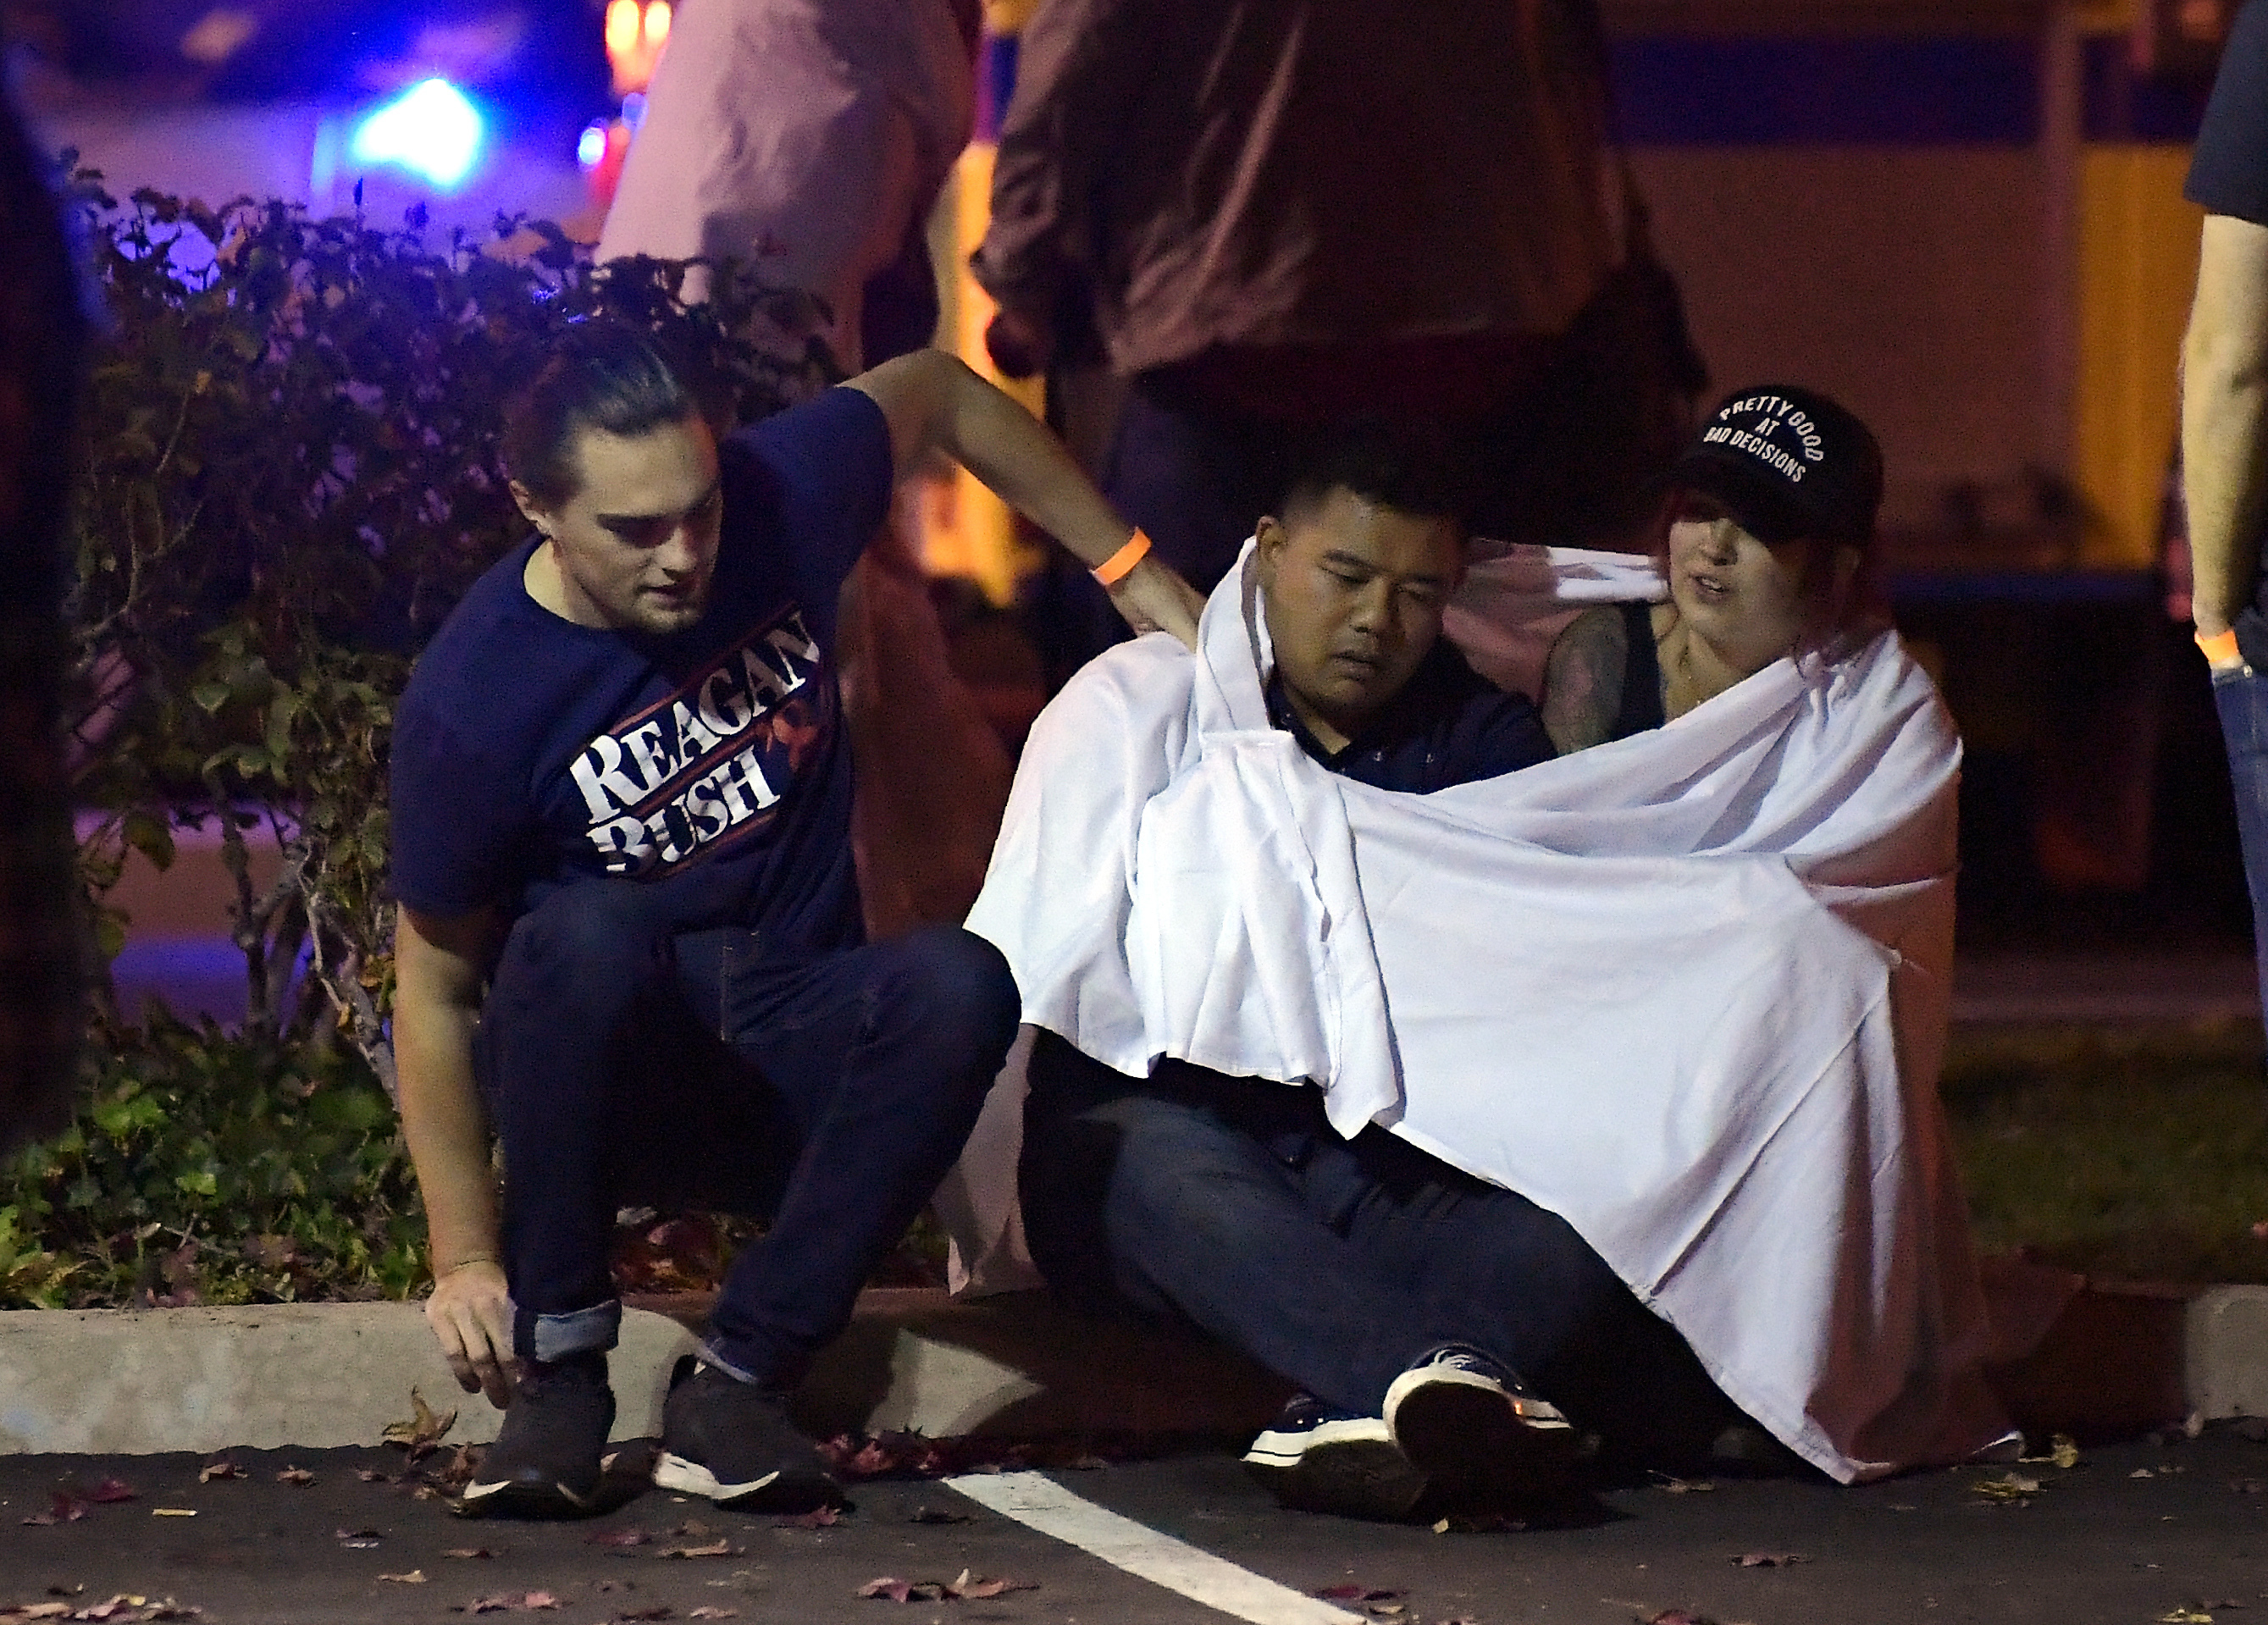 <div class='meta'><div class='origin-logo' data-origin='none'></div><span class='caption-text' data-credit='AP Photo/Mark J. Terrill'>People comfort each other after gunman opens fire on a nightclub in California, killing at least 11.</span></div>